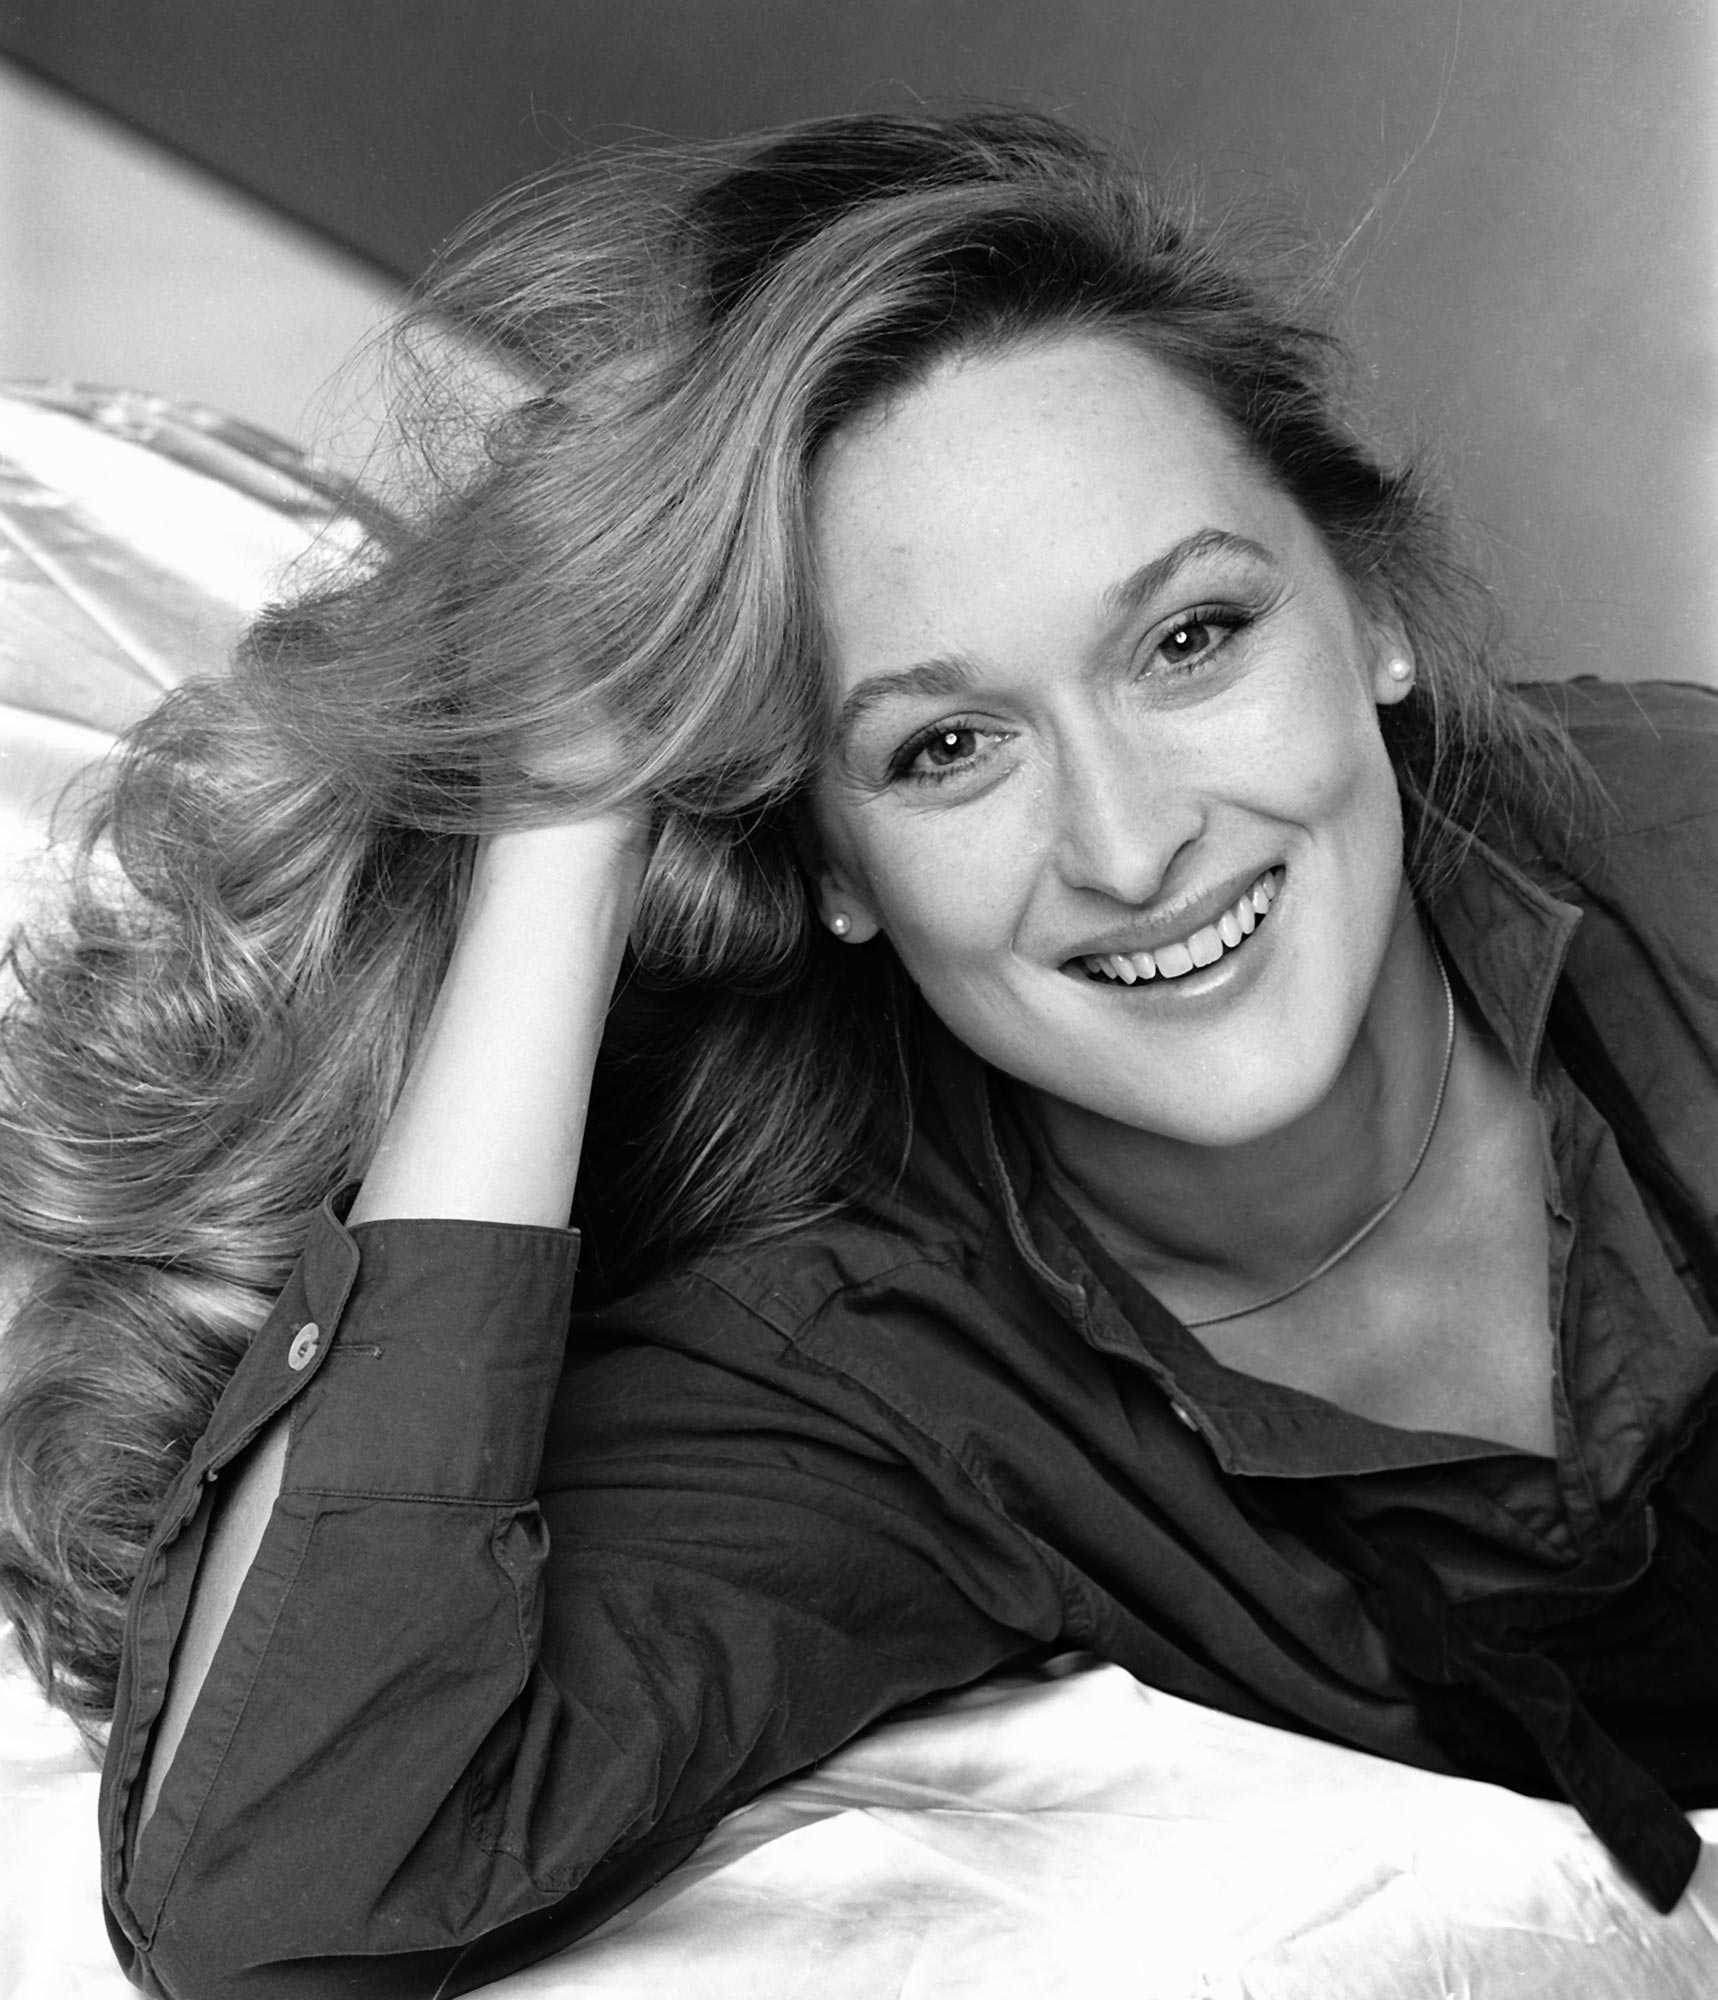 Meryl Streep Can't Watch Her Old Movies Because She Was 'So Unhappy': 'I Thought I Was Fat'